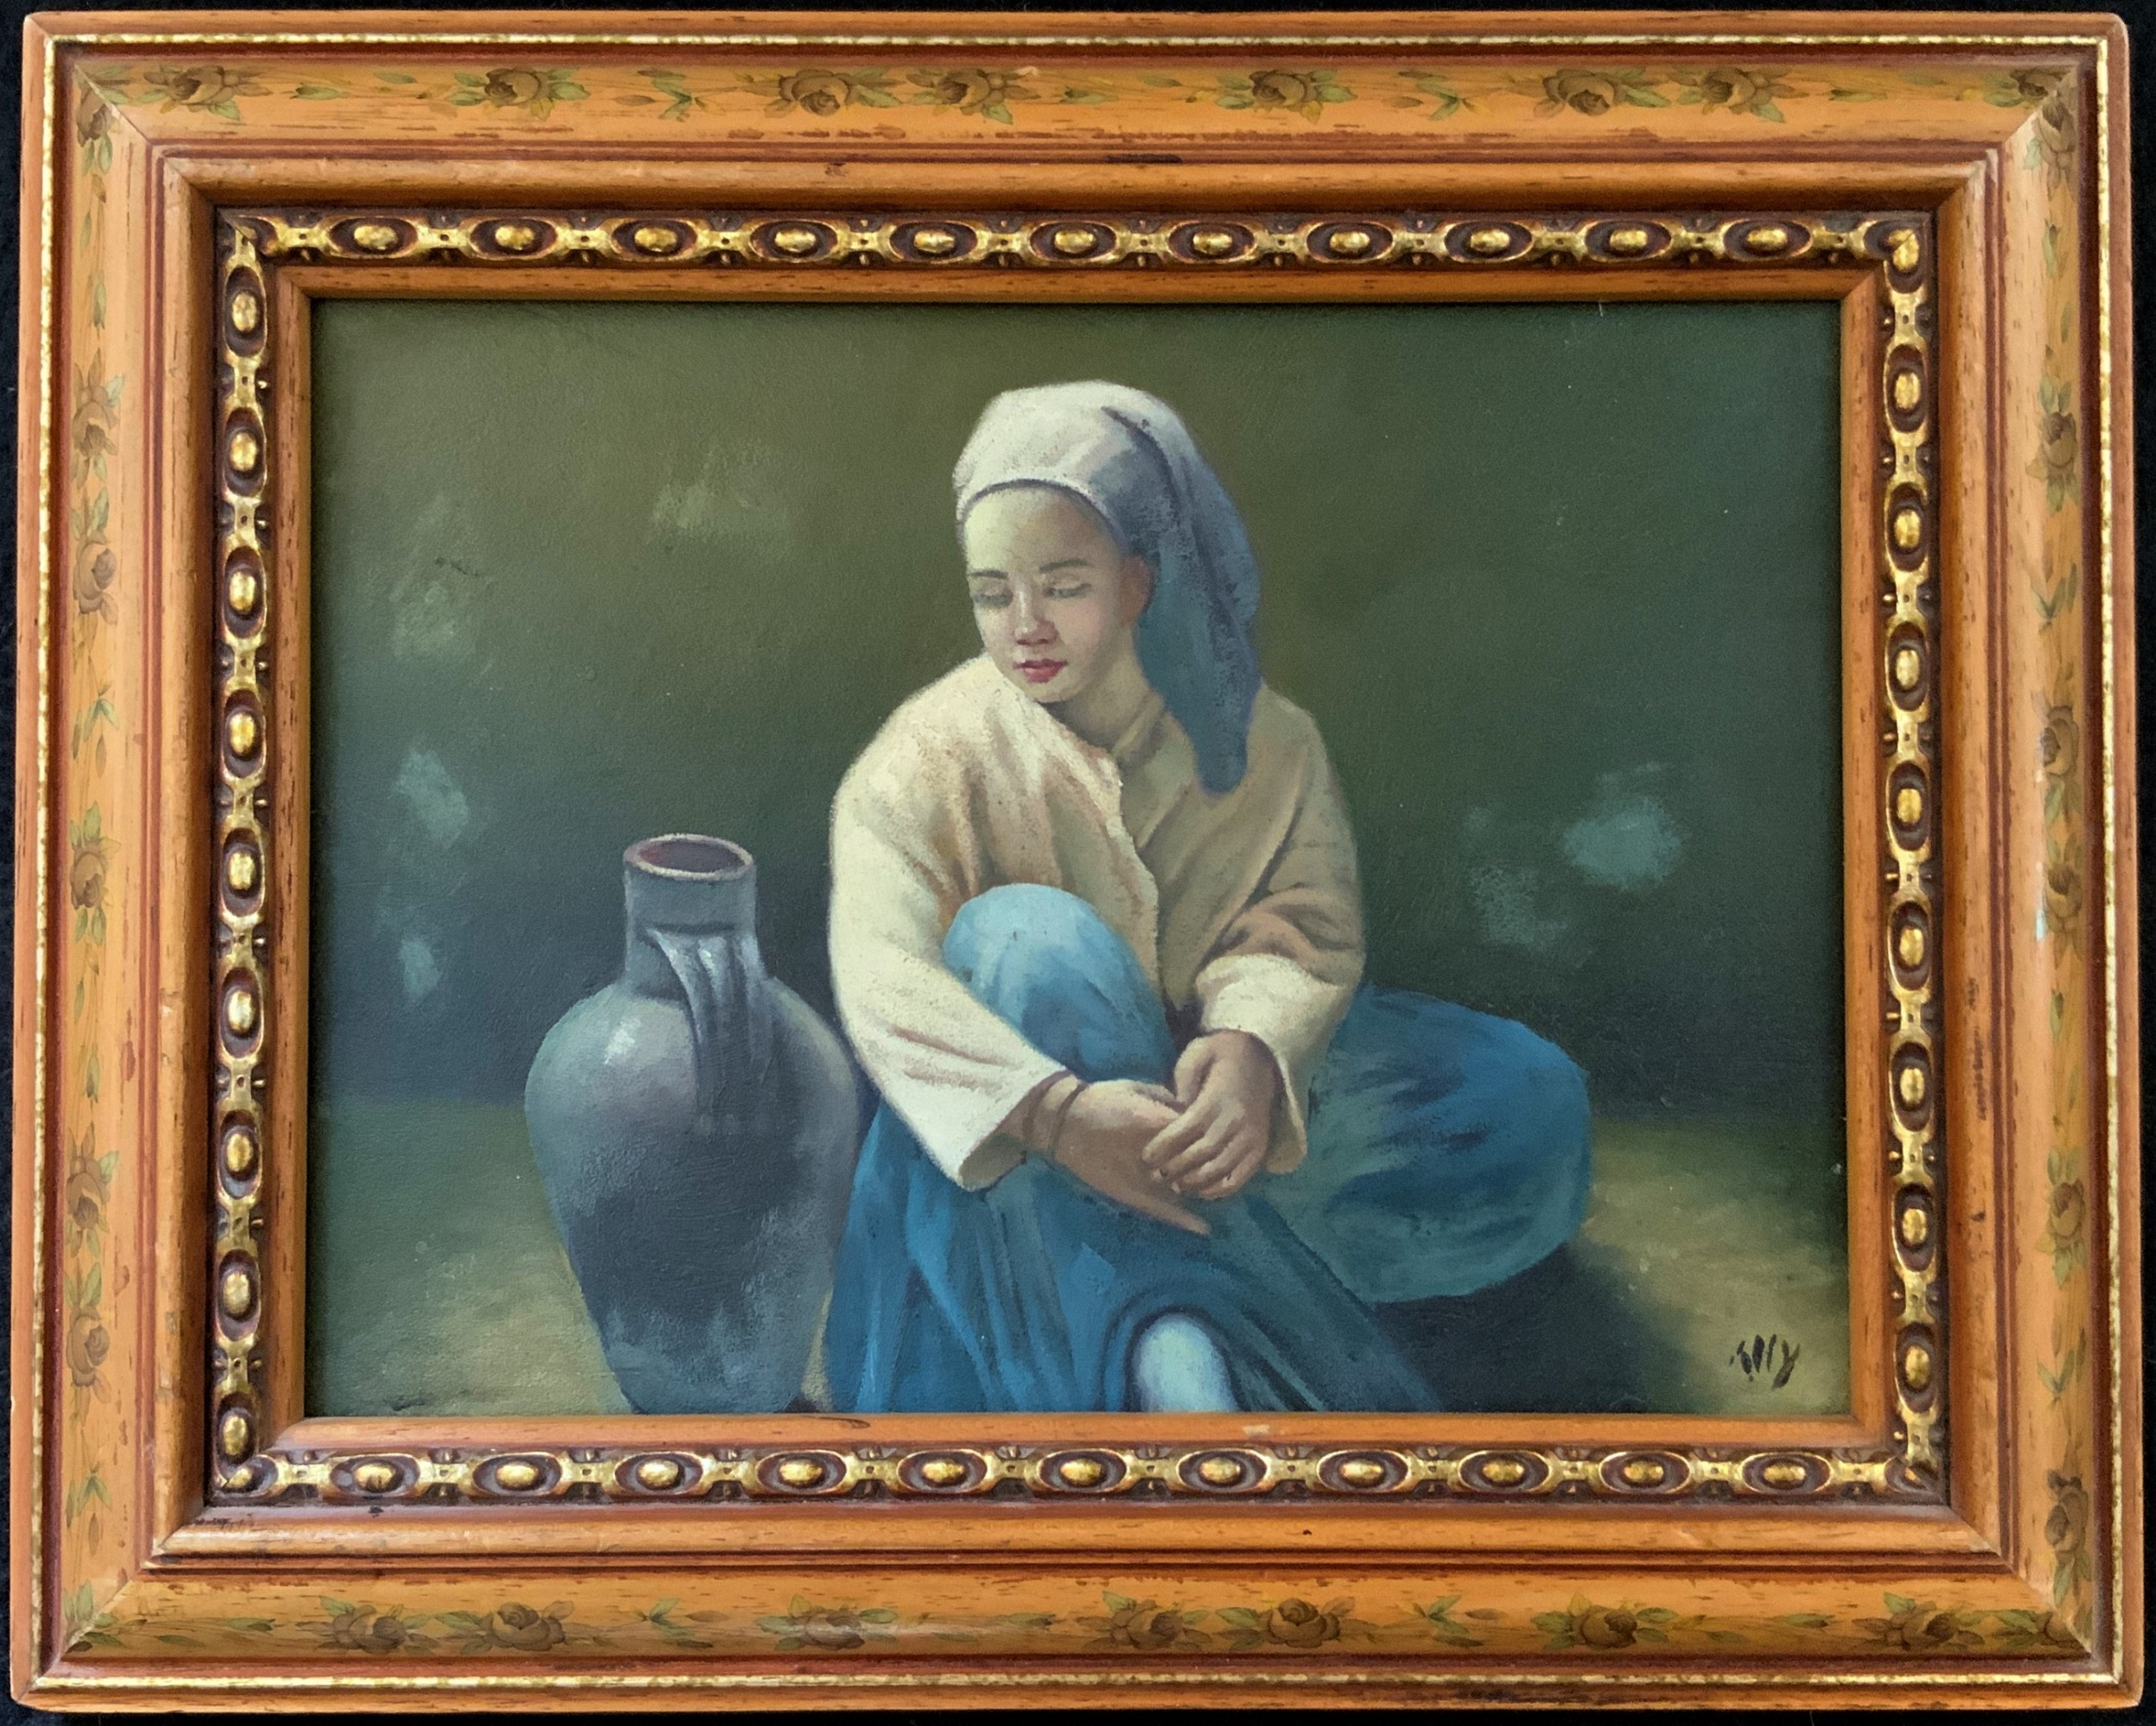 a beautiful original vintage continental oil portrait painting of a seated girl